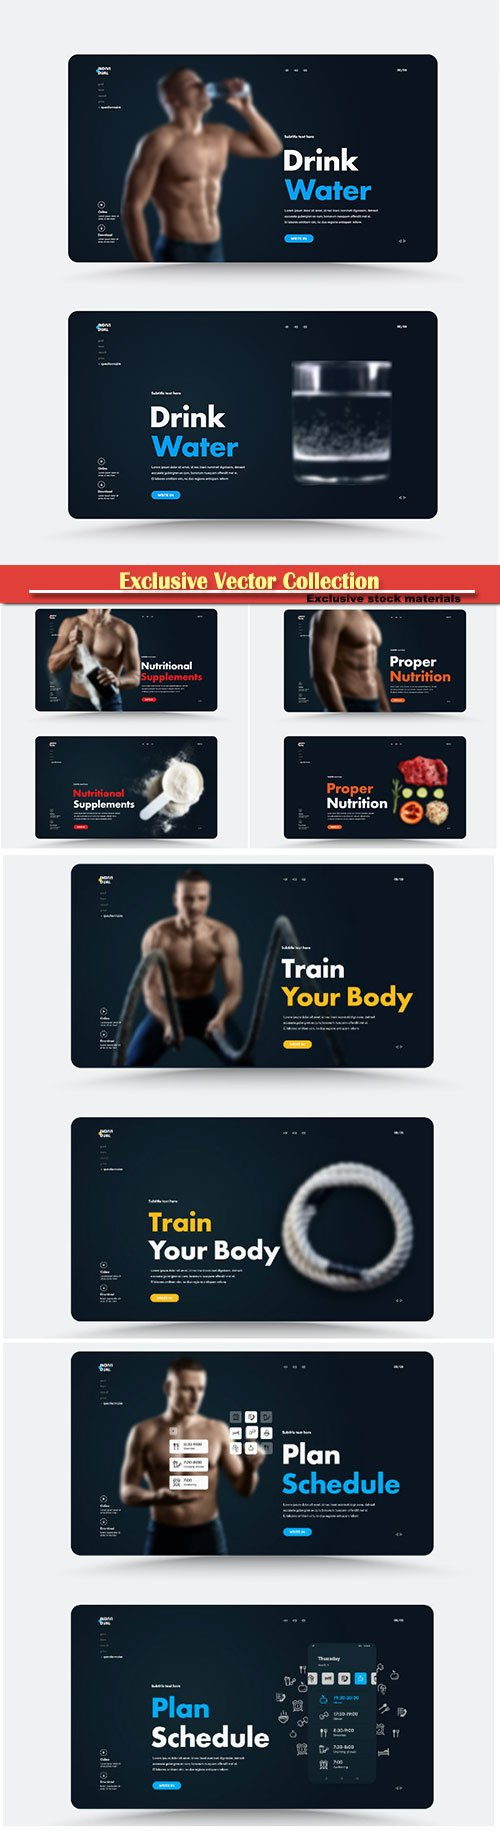 Vector website page design for a personal trainer or nutritionist